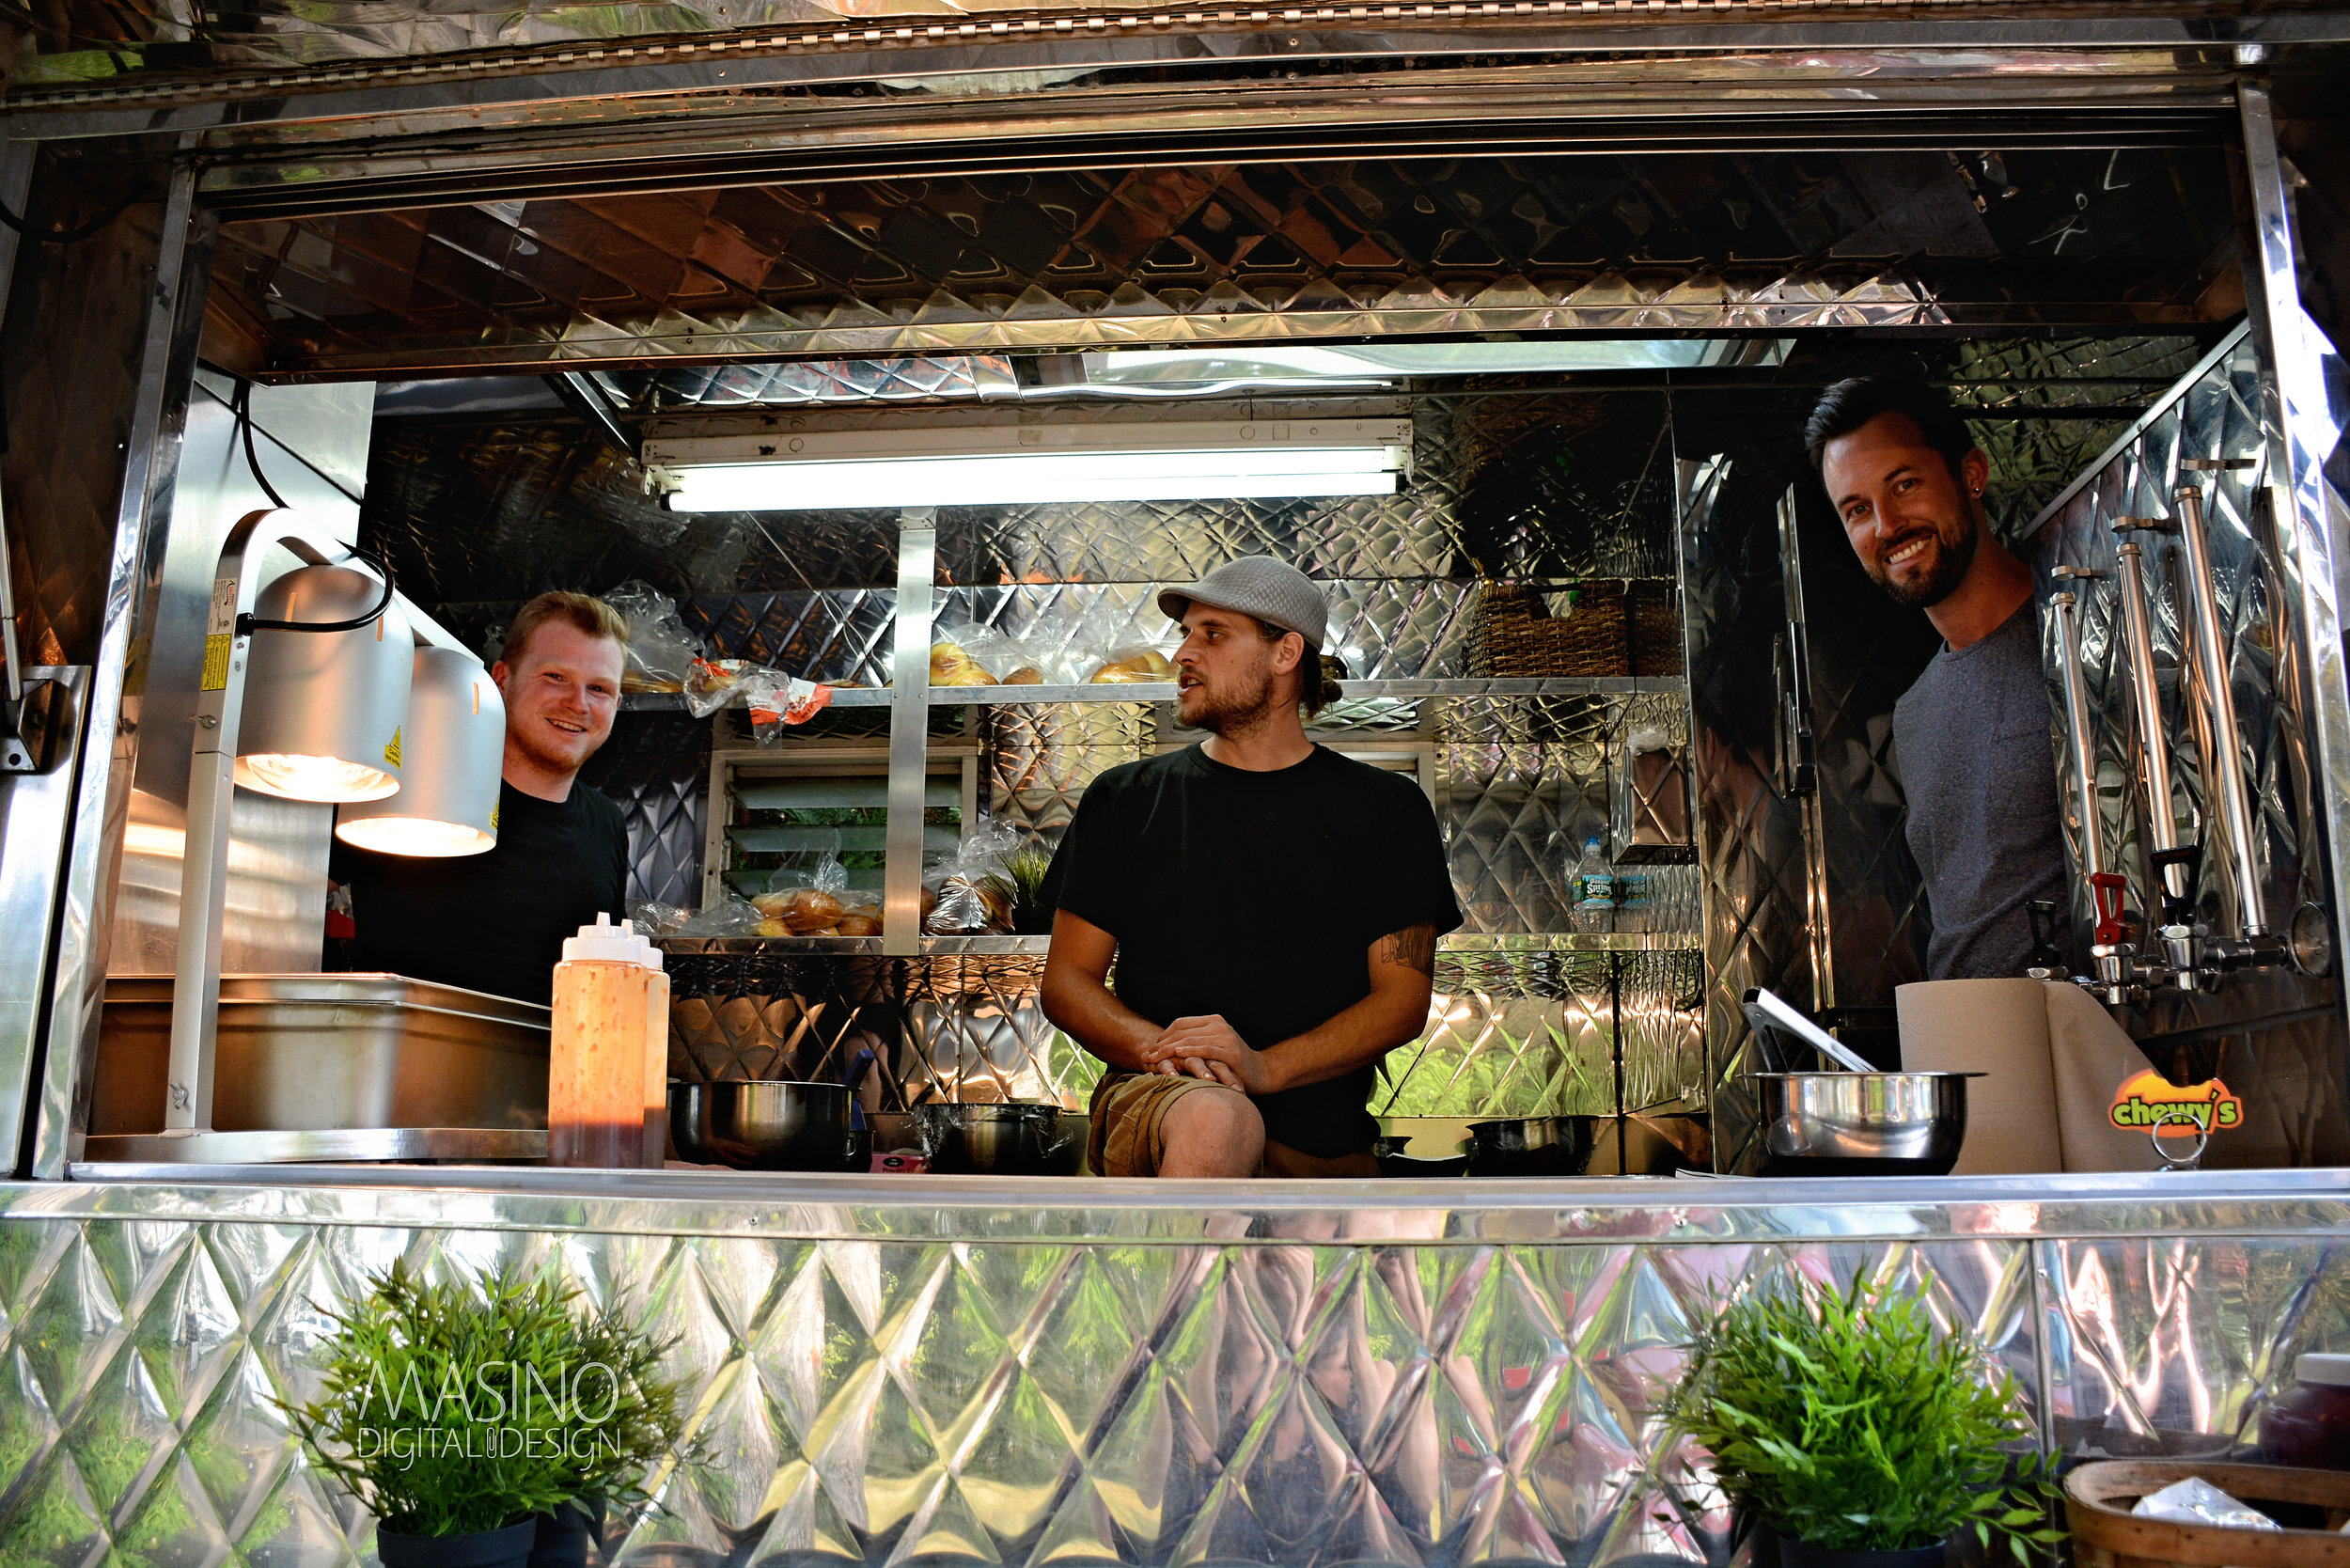 chewys food truck team